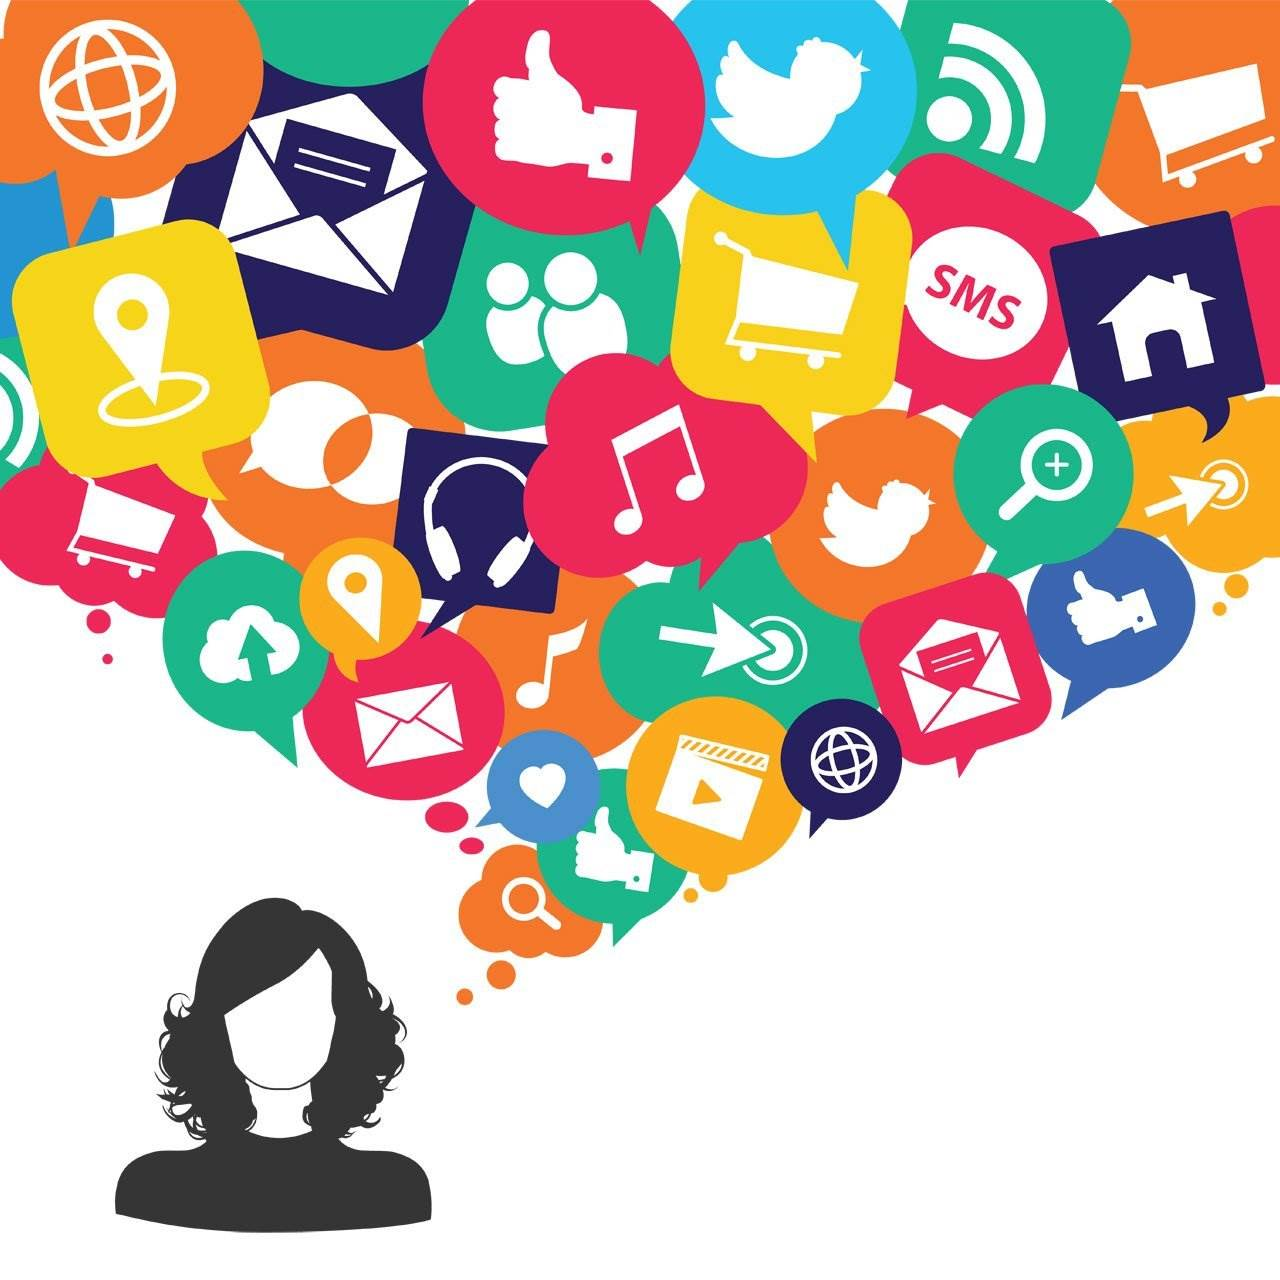 How to Use Social Networks to Help Sell Your Business